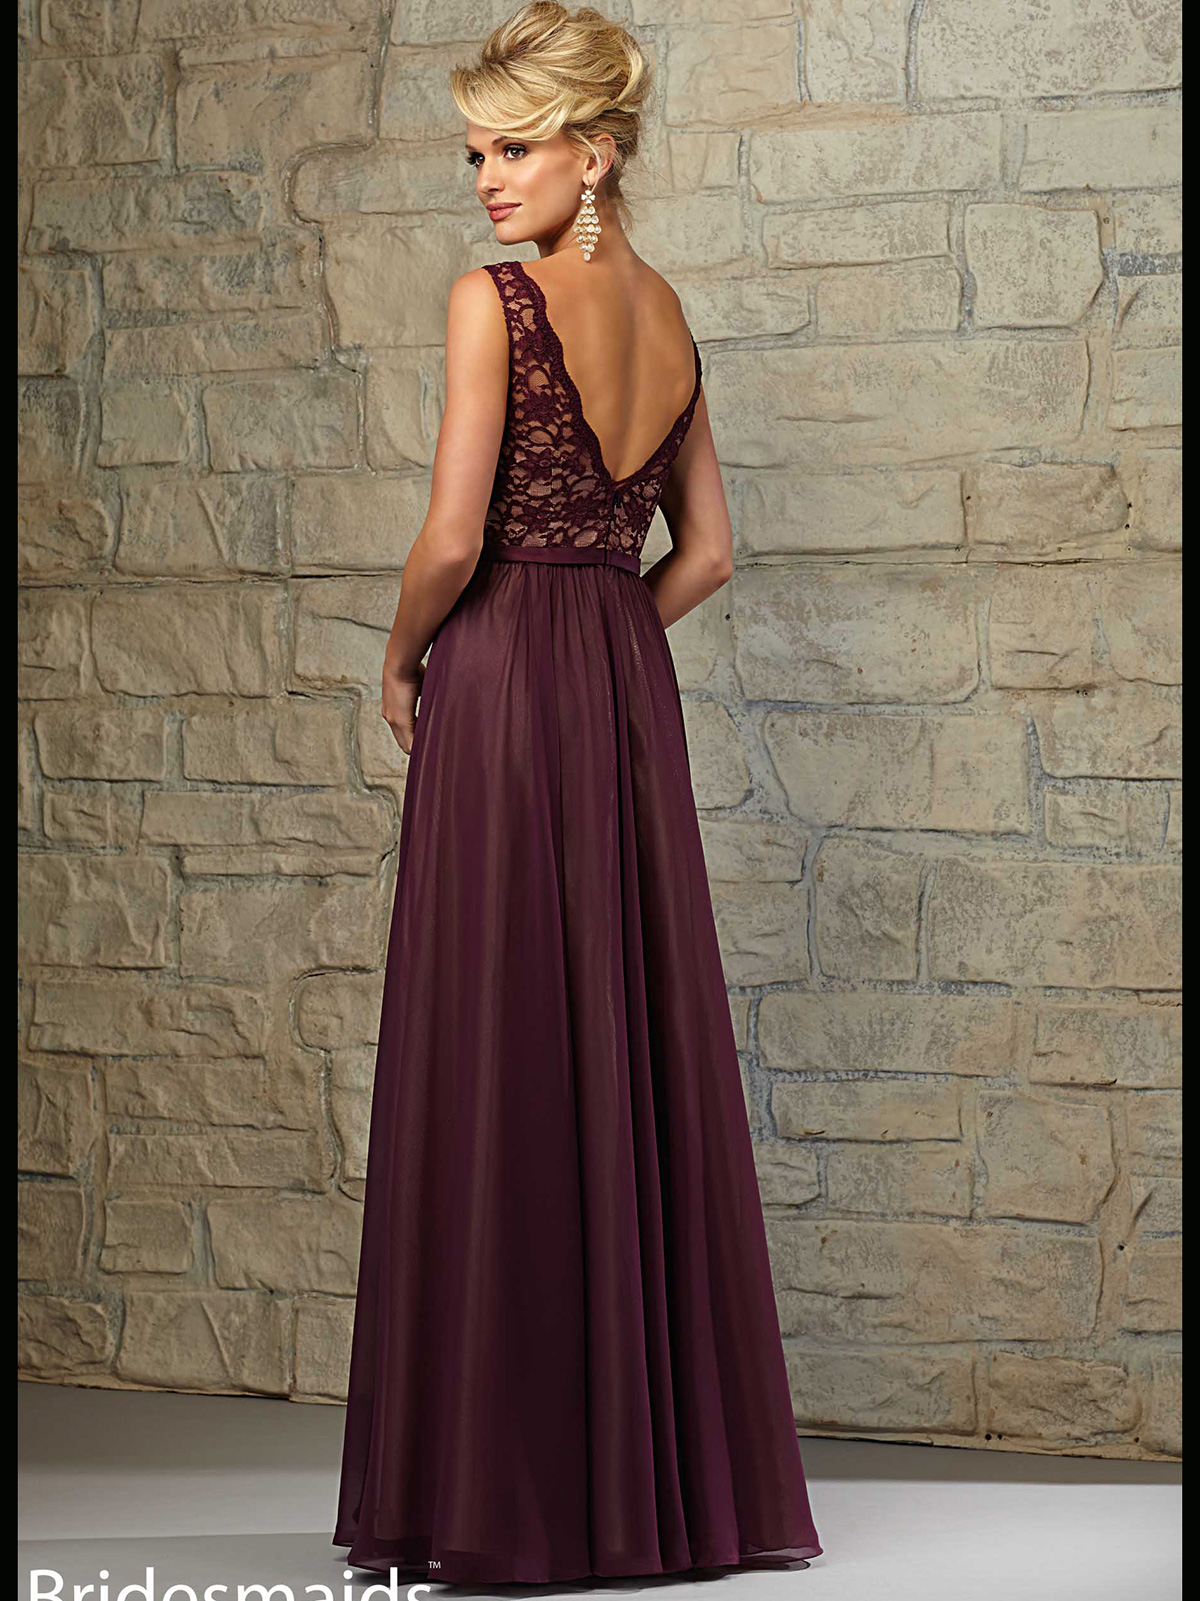 Mori lee bridesmaid dress 714 dimitradesigns mori lee bridesmaid dress 714 ombrellifo Image collections